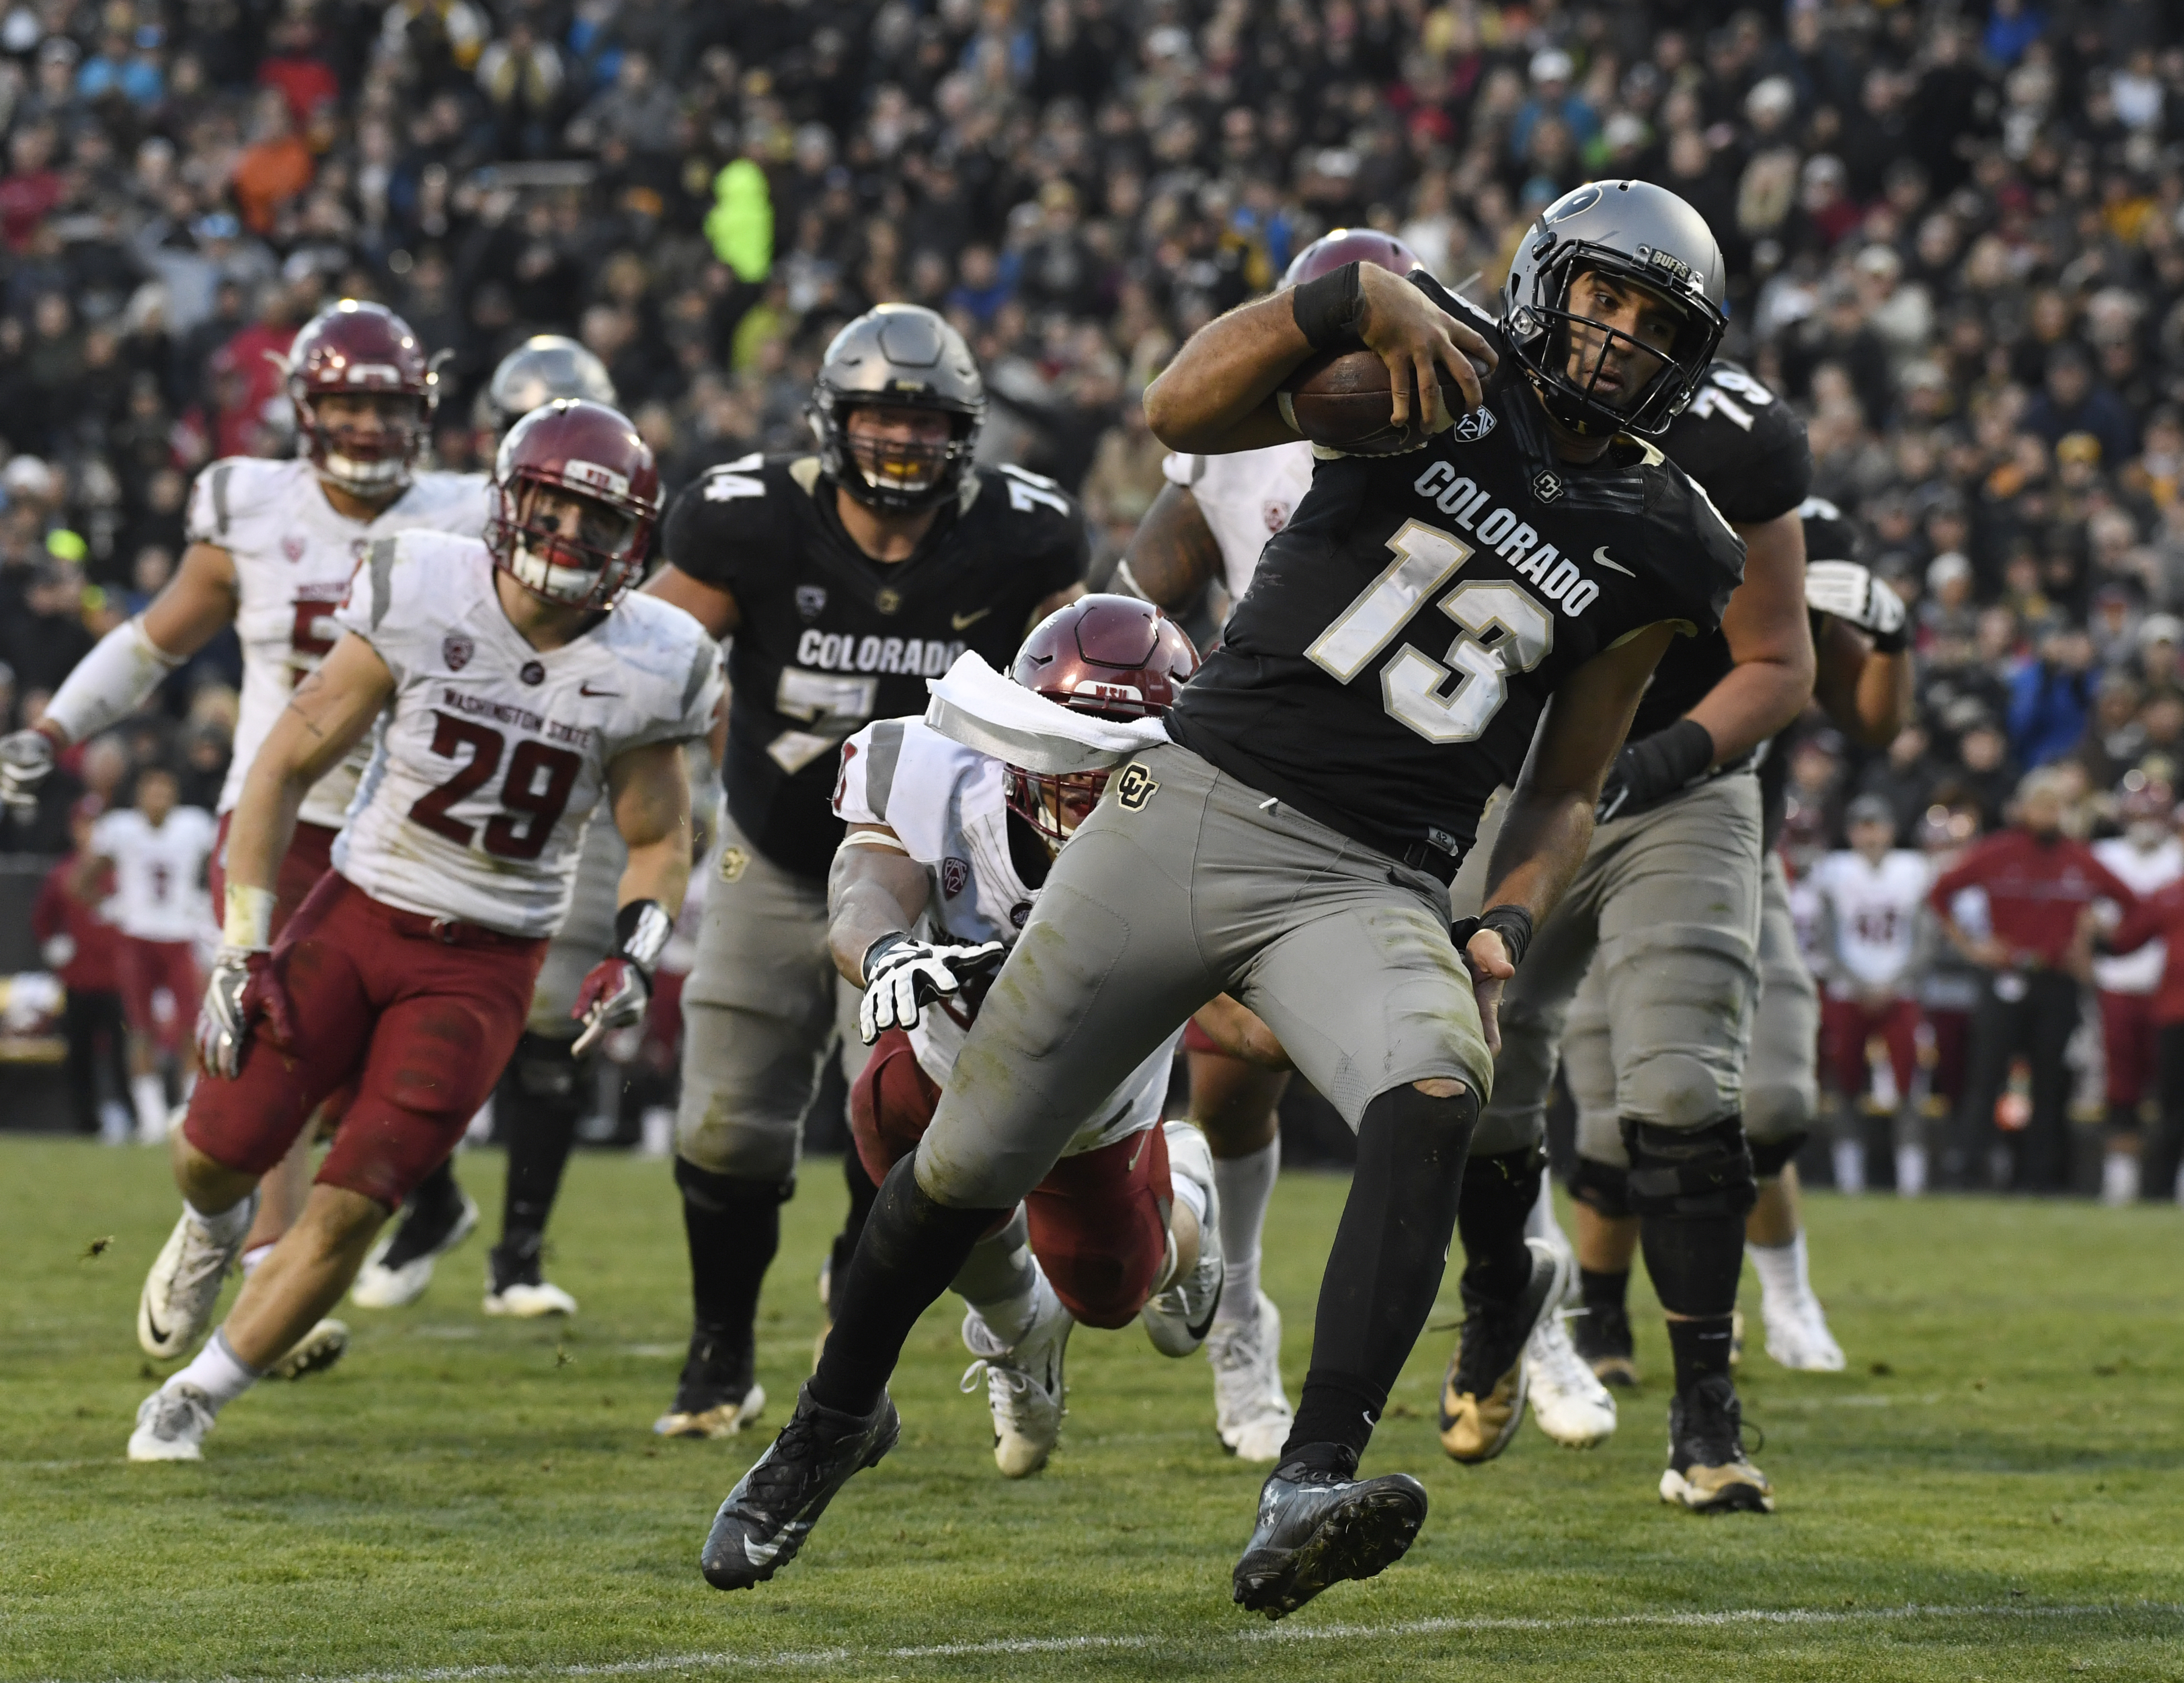 BOULDER, CO - November 19: Colorado Buffaloes quarterback Sefo Liufau #13 eludes Washington State Cougars defensive lineman Nnamdi Oguayo #30 for a touchdown in the third quarter at Folsom Field November 19, 2016. (Photo by Andy Cross/The Denver Post via Getty Images)